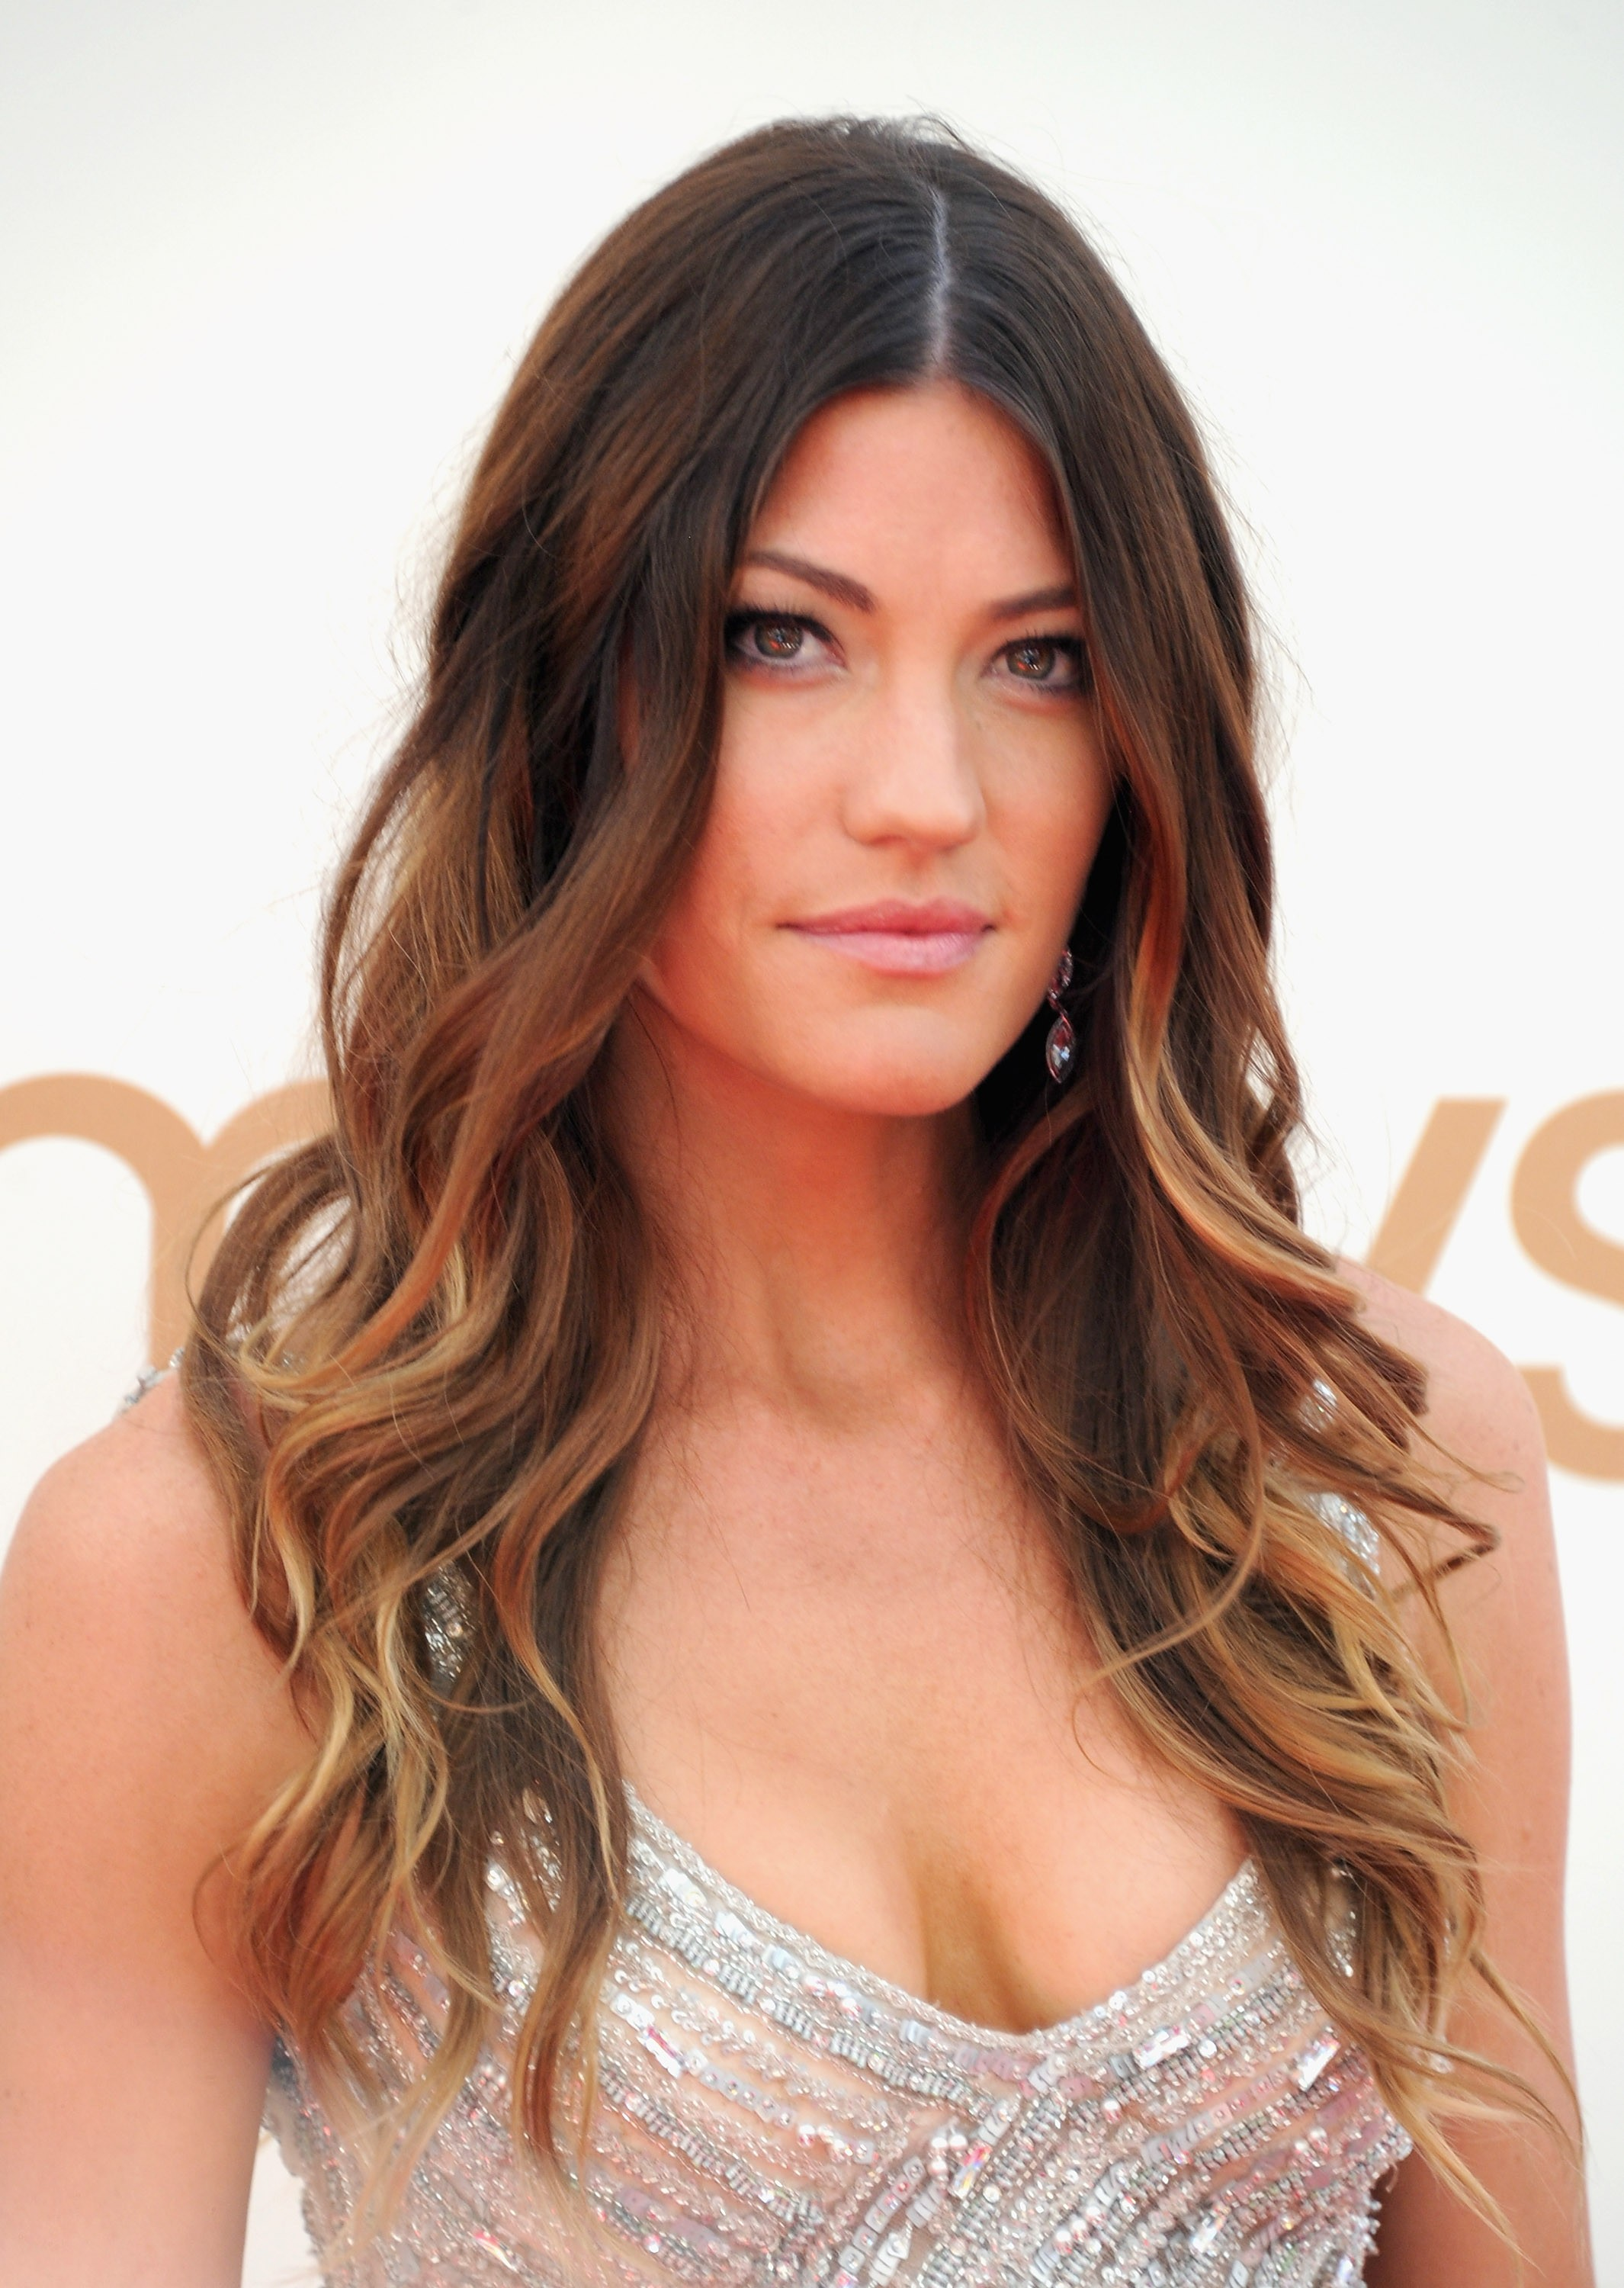 jennifer-carpenter-1.jpg